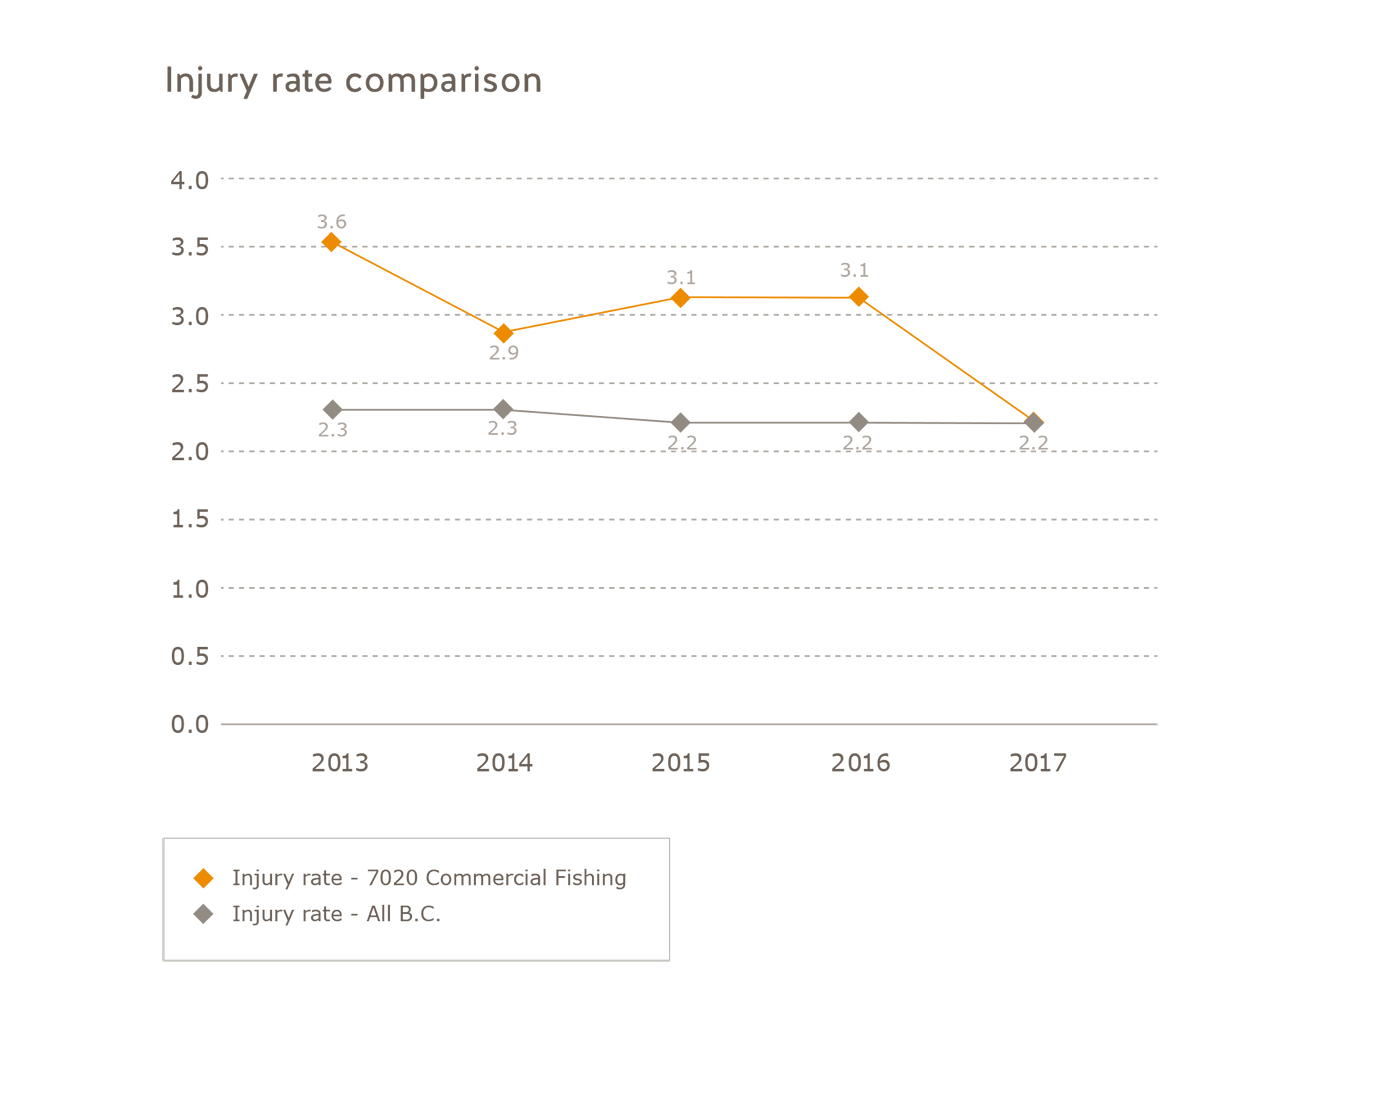 Injury rate comparison commercial fishing subsector 2014 to 2017. Commercial fishing: 2013 = 3.6, 2014 = 2.9, 2015 = 3.1, 2016 = 3.1, 2017 - 2.2. All of B.C.: 2013 = 2.3, 2014 = 2.3, 2015 = 2.2, 2016 = 2.2, 2017 = 2.2